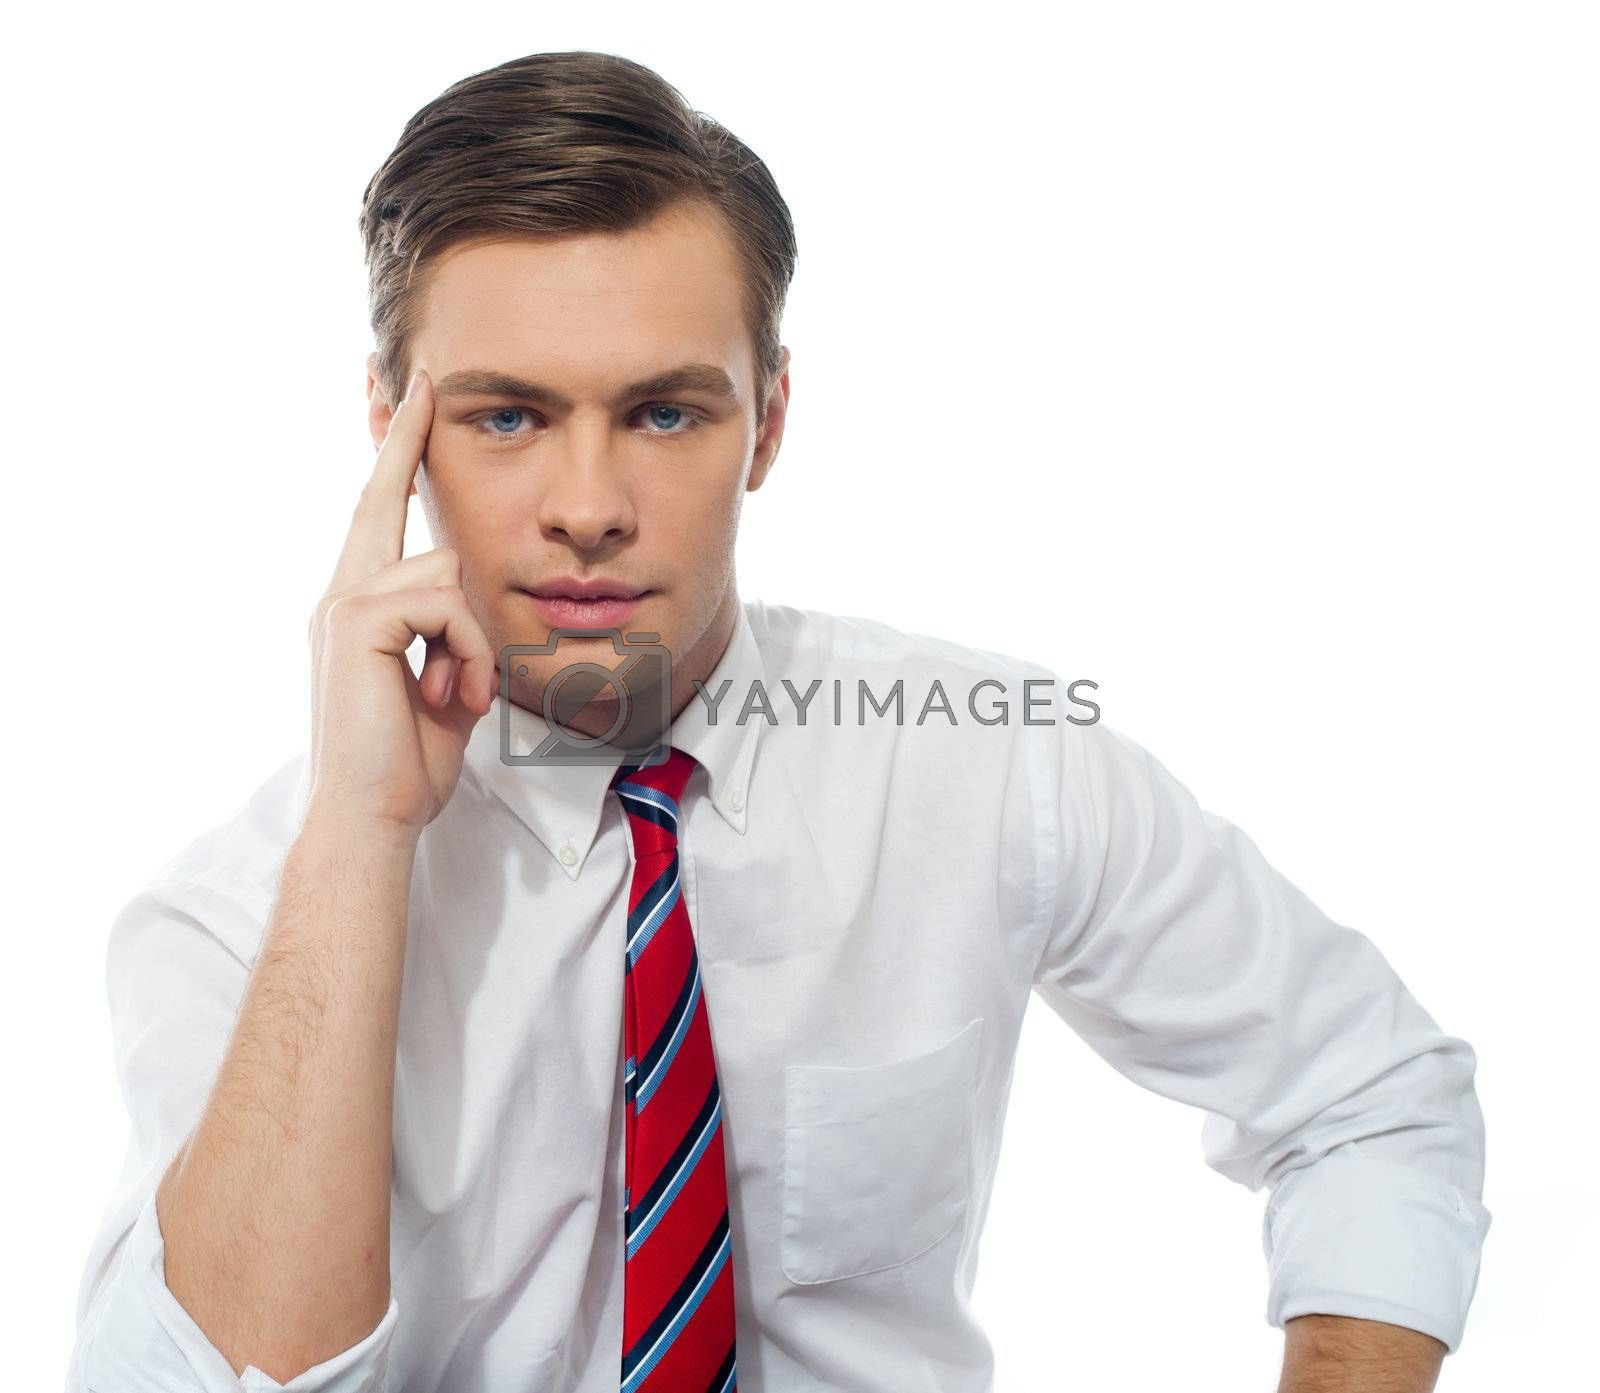 Stylish portrait of a handsome business executive isolated over white background